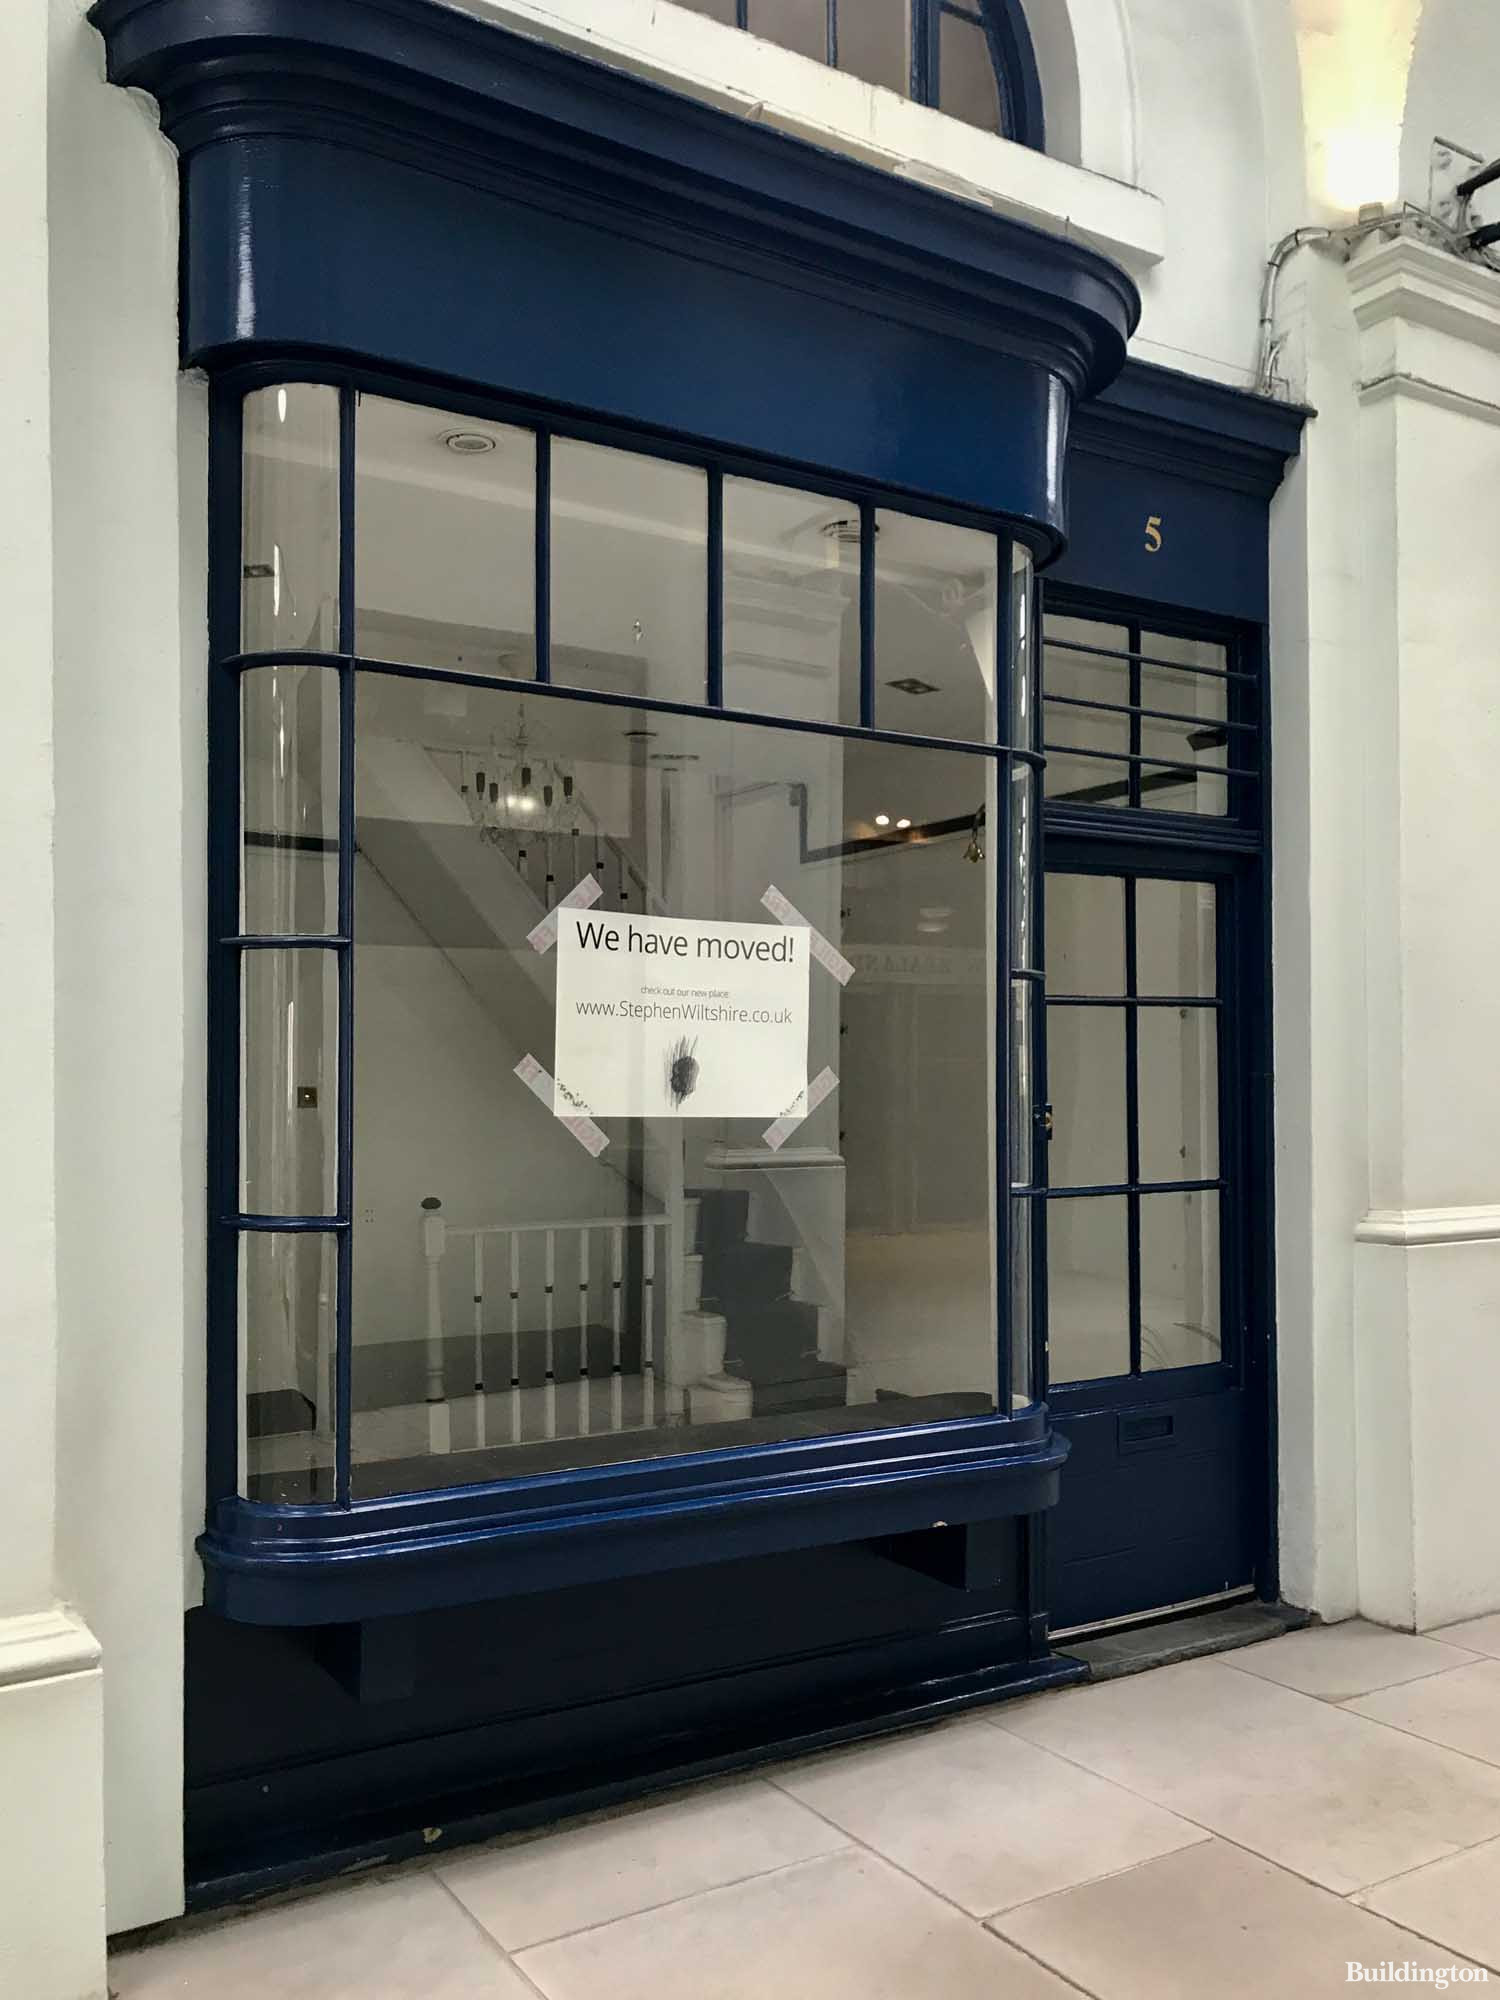 Royal Opera Arcade shop - we have moved sign on the window.